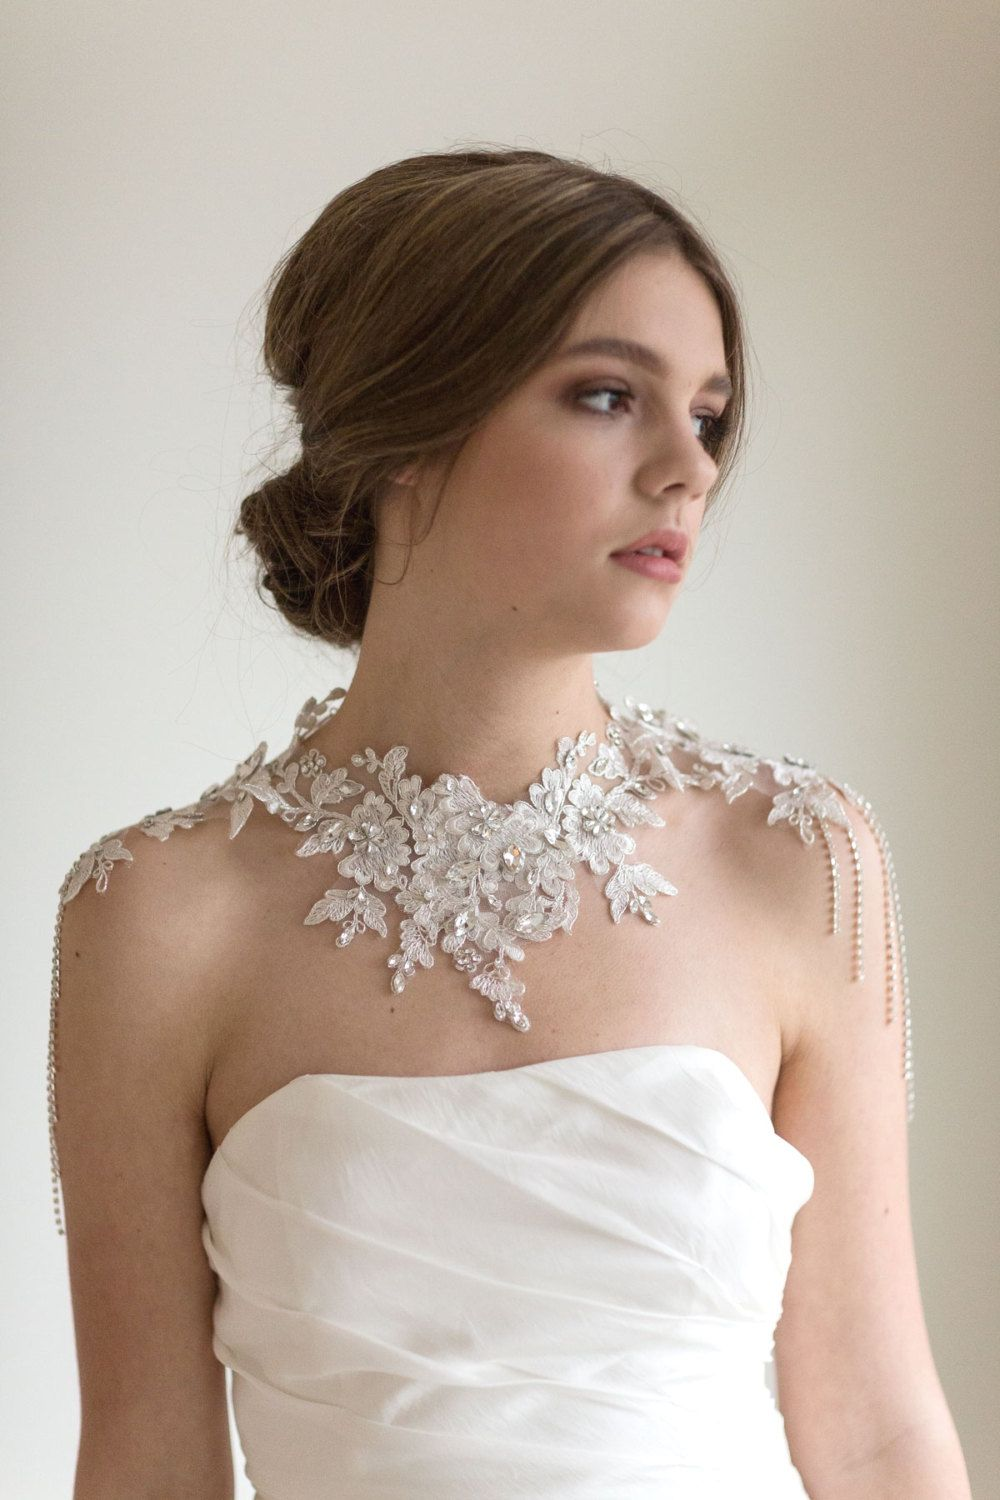 Lace Shoulder Jewelry Bridal Lace Bib Necklace Wedding Rhinestone Statment Necklace Bridal Lace Shoulder Jewelry Dress Accessories